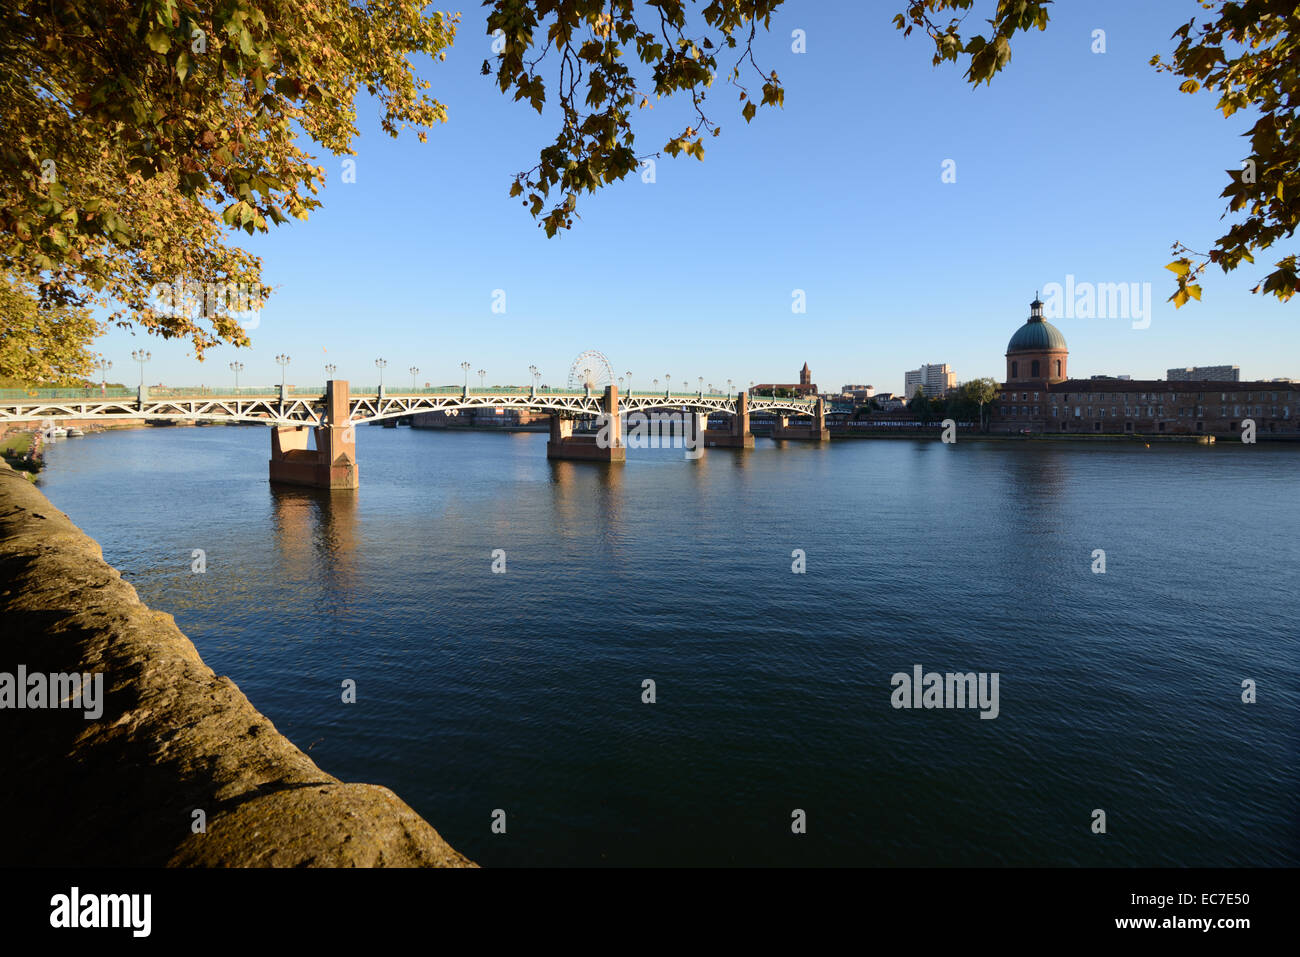 River Garonne and Pont Saint Pierre Bridge with Dome of Saint Joseph Chapel Toulouse Haute-Garonne France - Stock Image